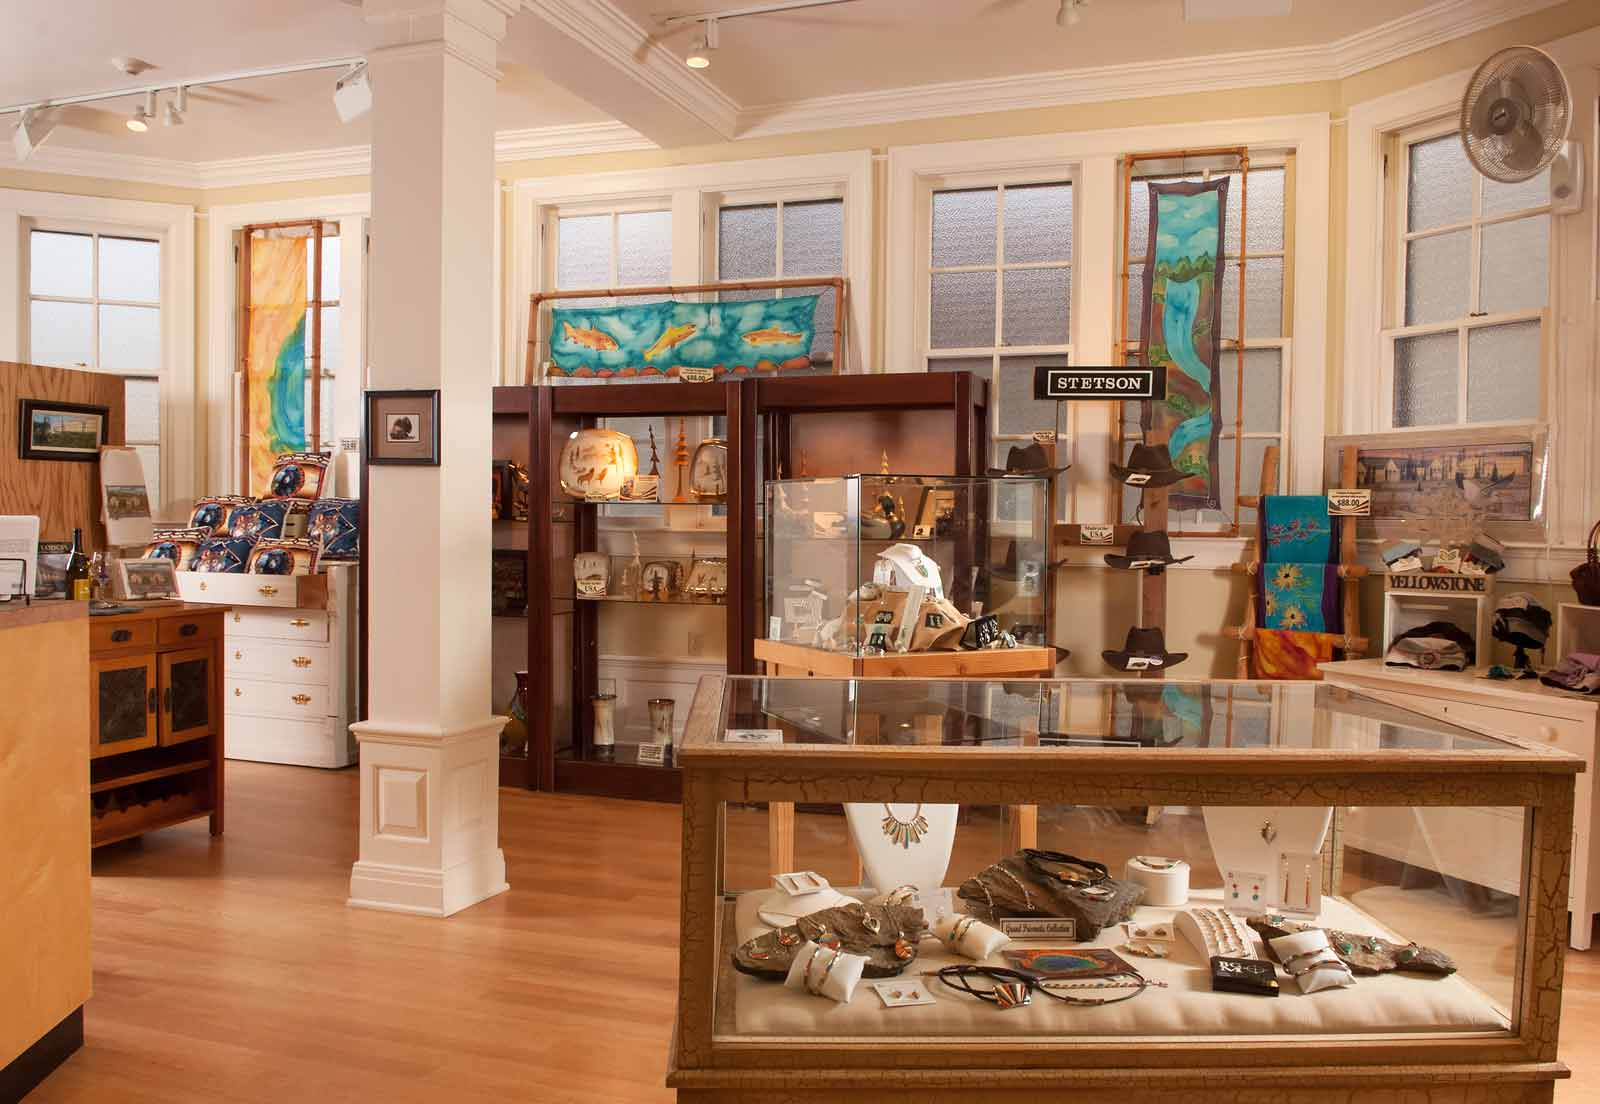 Display cabinets in gift shop